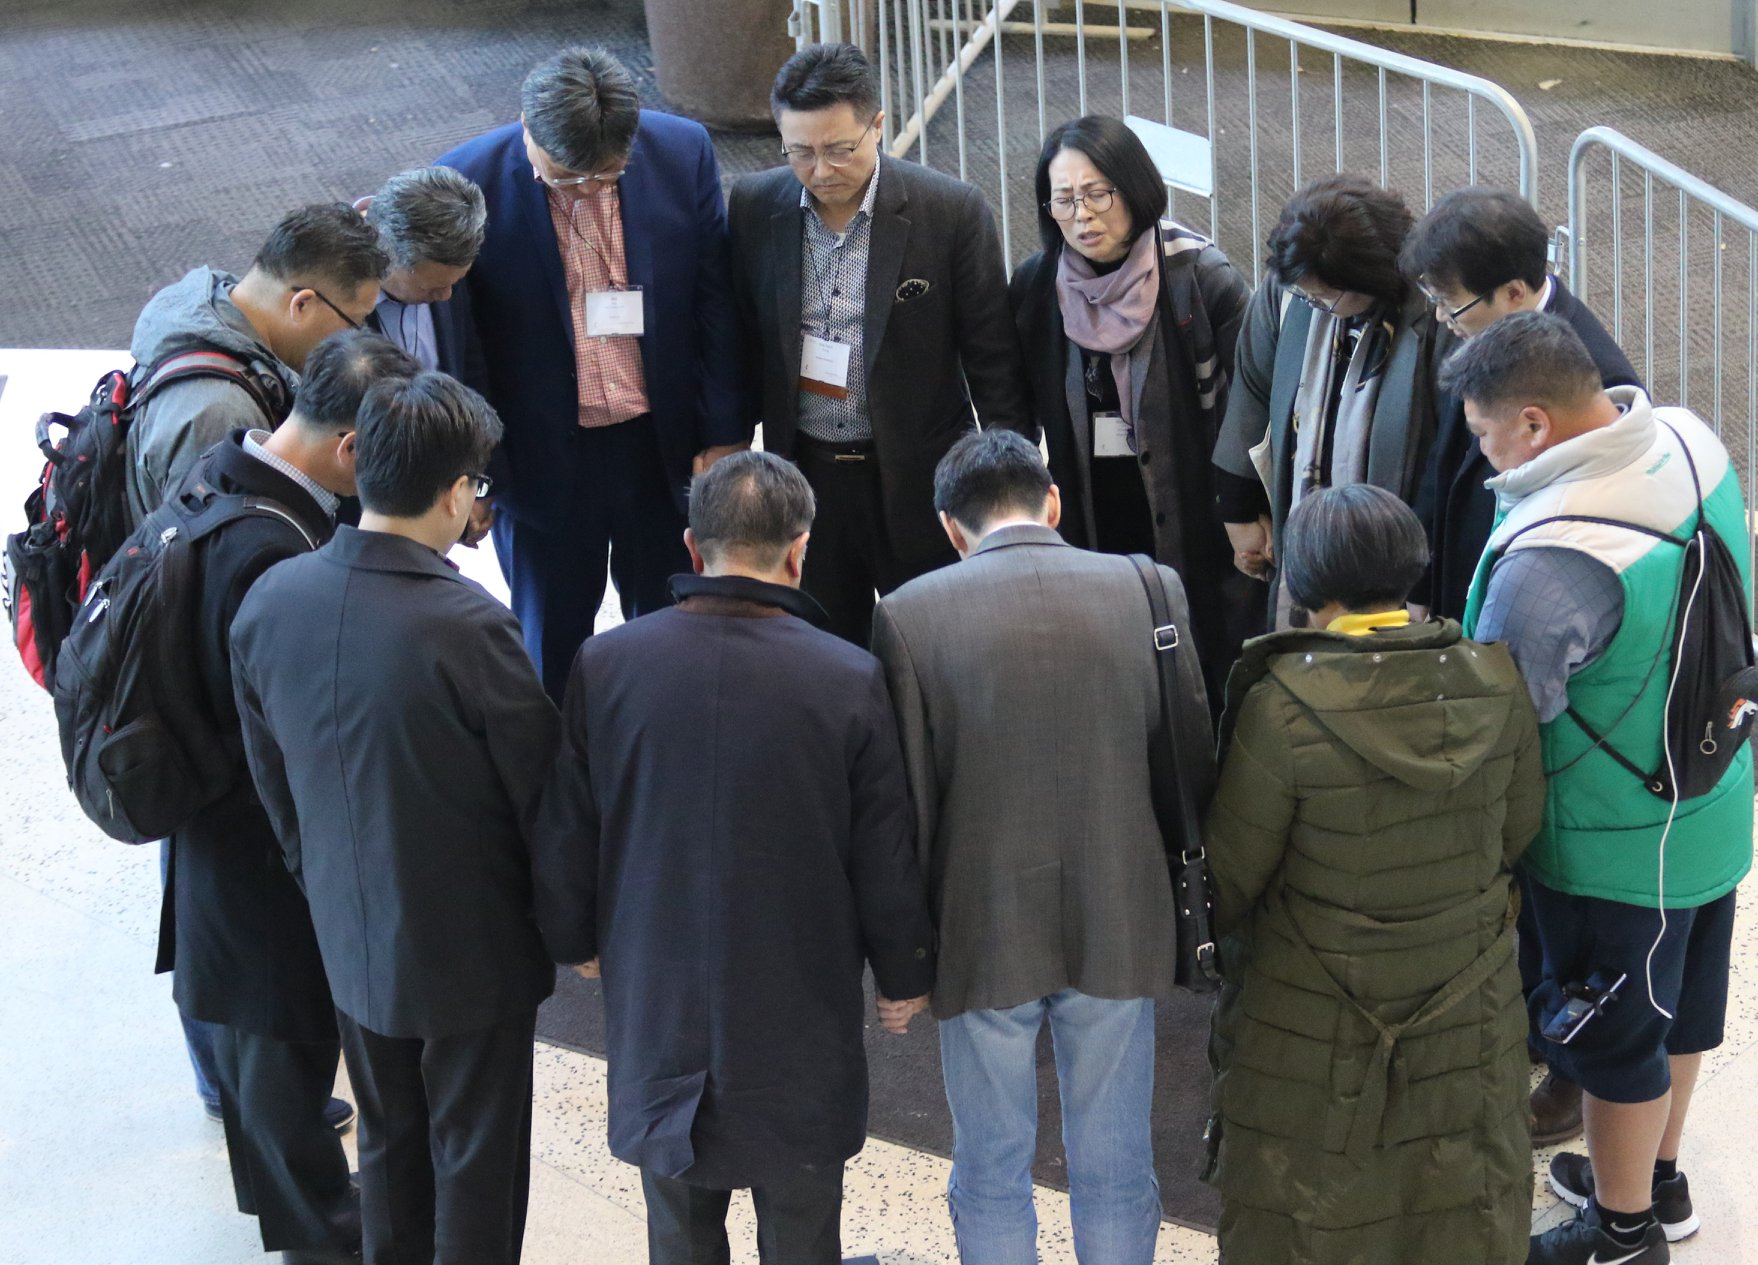 Korean United Methodists gather in prayer during the 2019 General Conference in St. Louis. Photo by the Rev. Thomas Kim, UMNS.